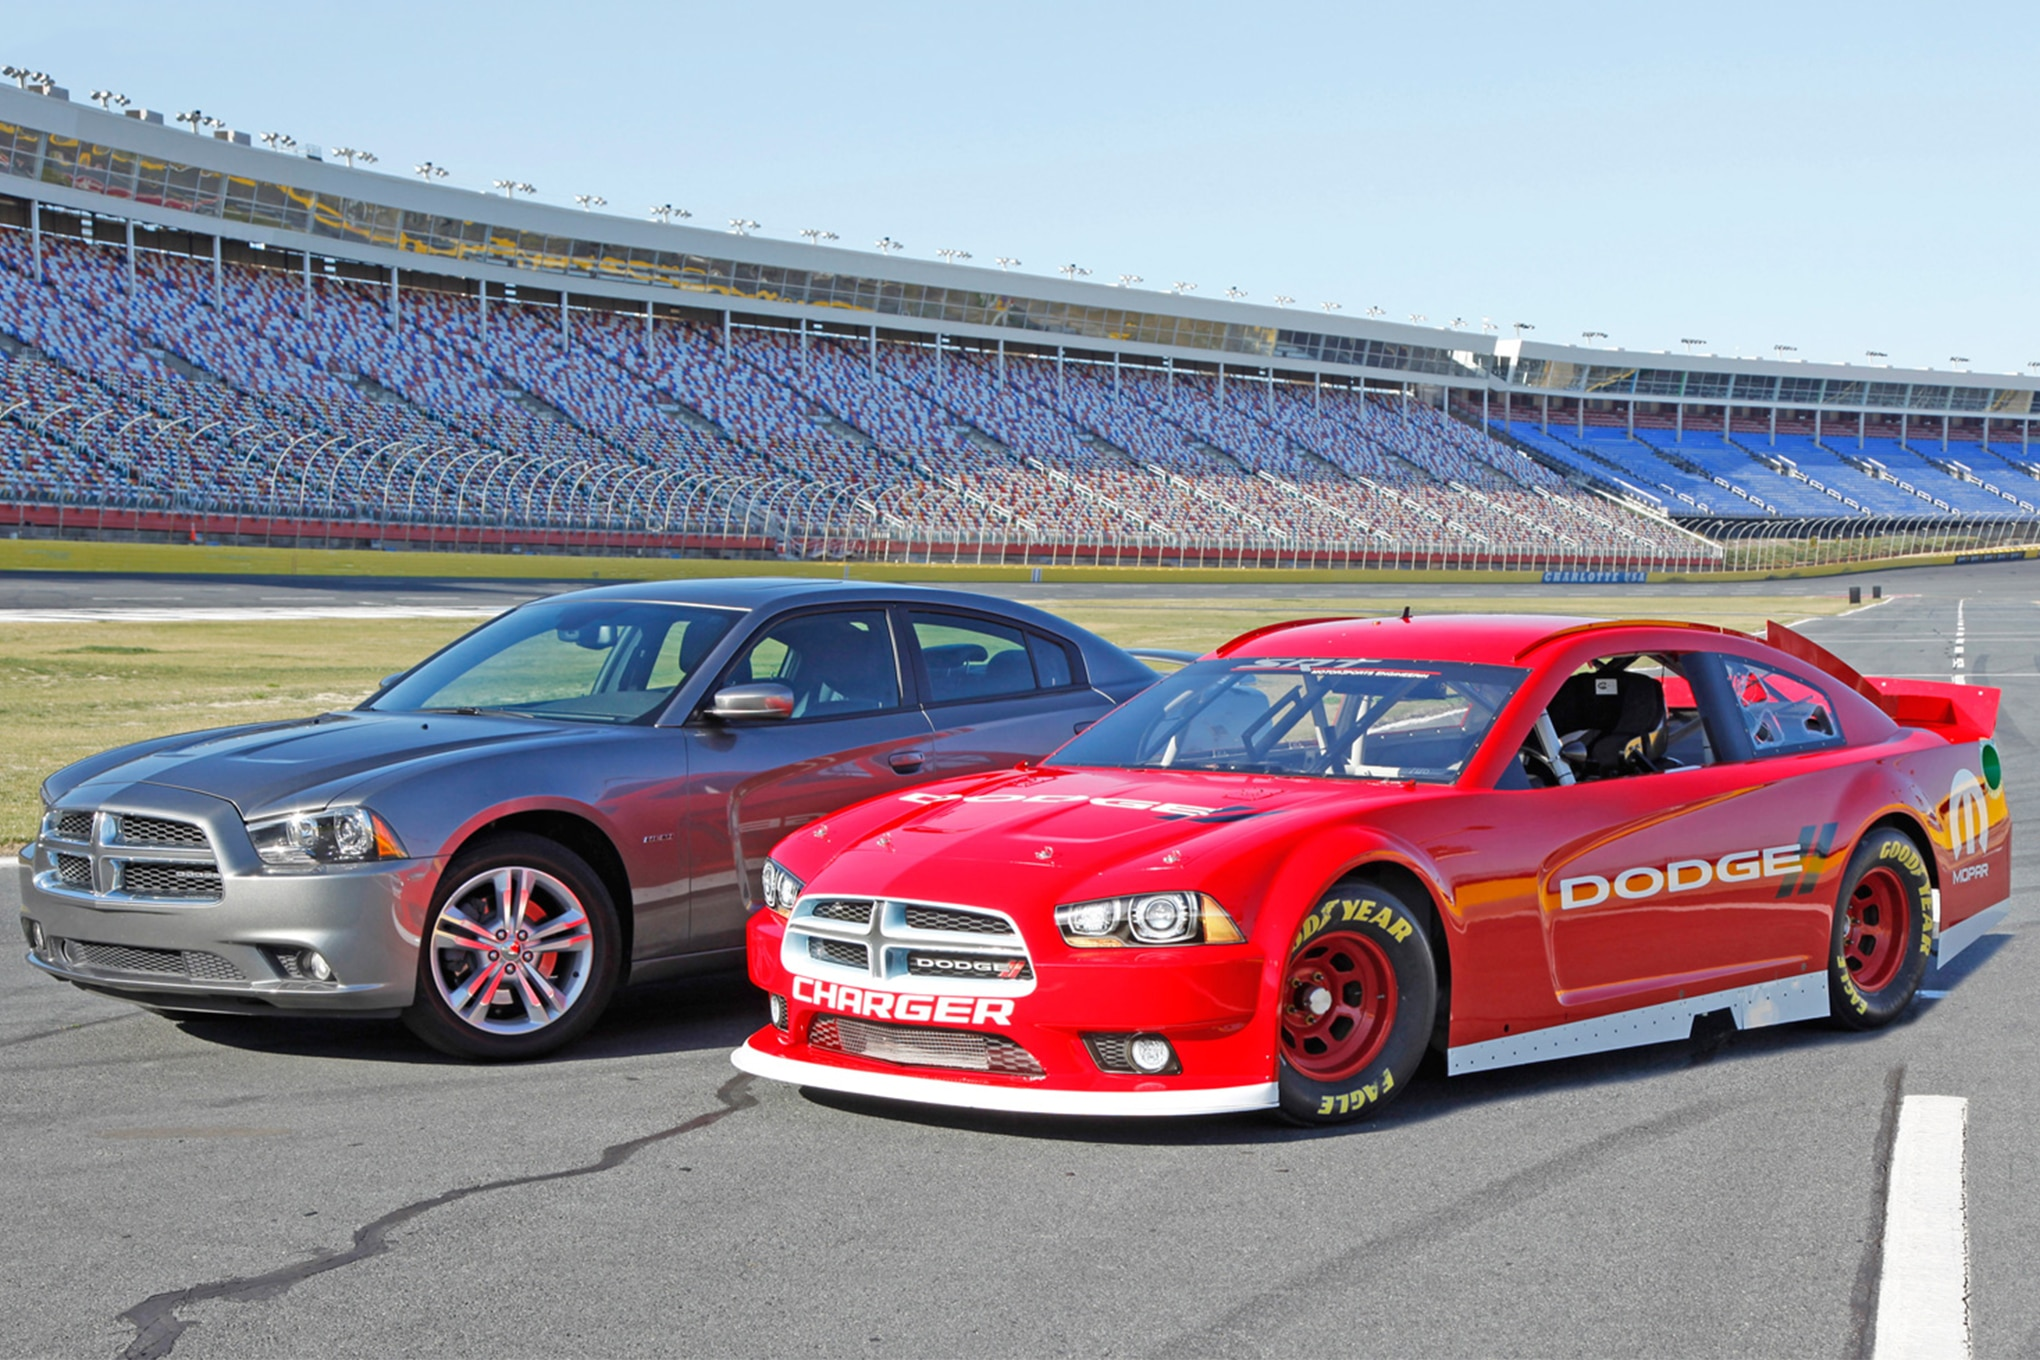 Chrysler Dodge Back In NASCAR